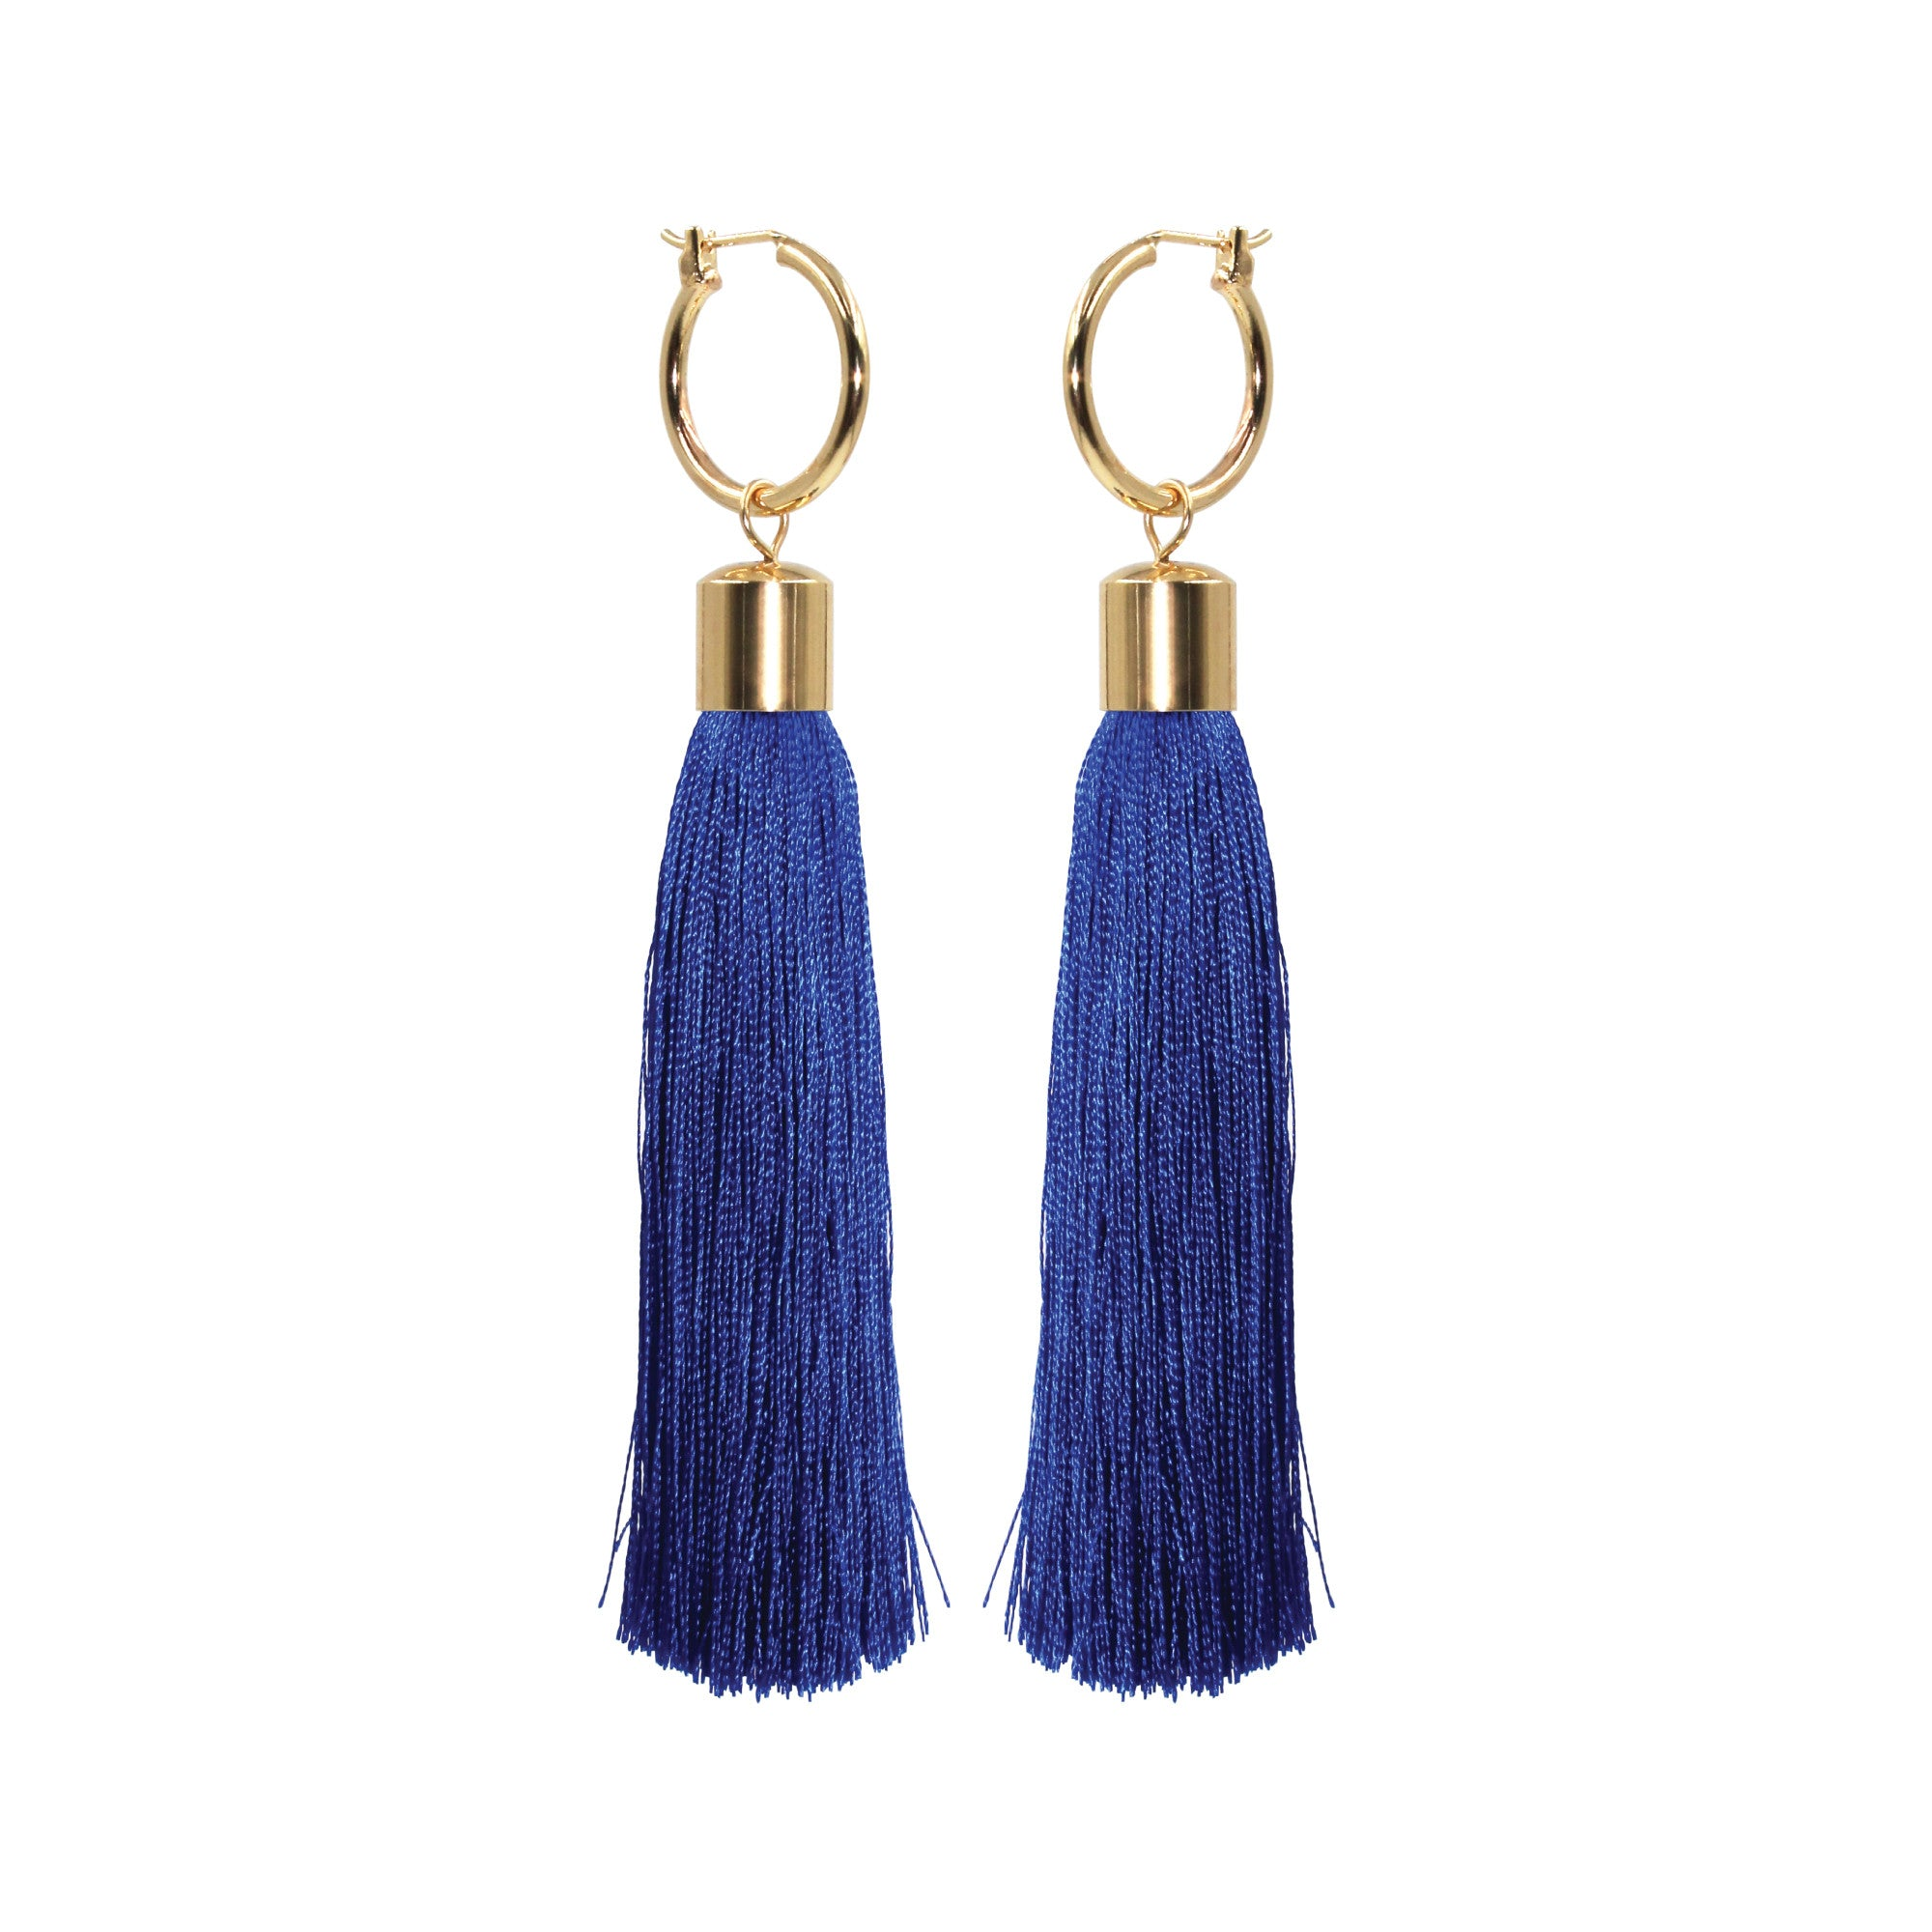 fringe earrings statement handmade and factory je jewelry long layered rainbow tassel colorful boo leather product